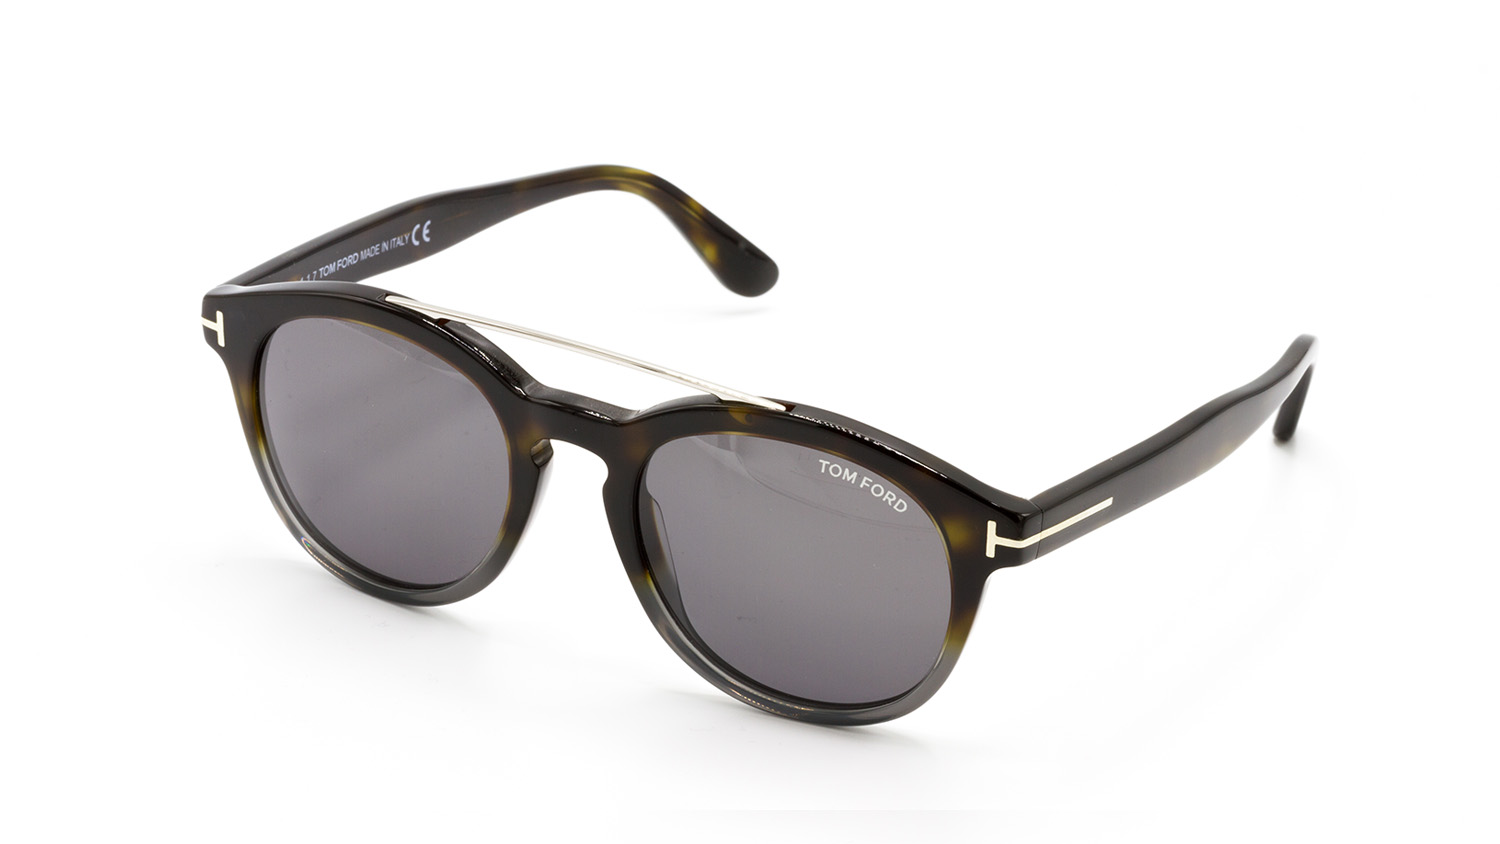 Tom Ford TF515